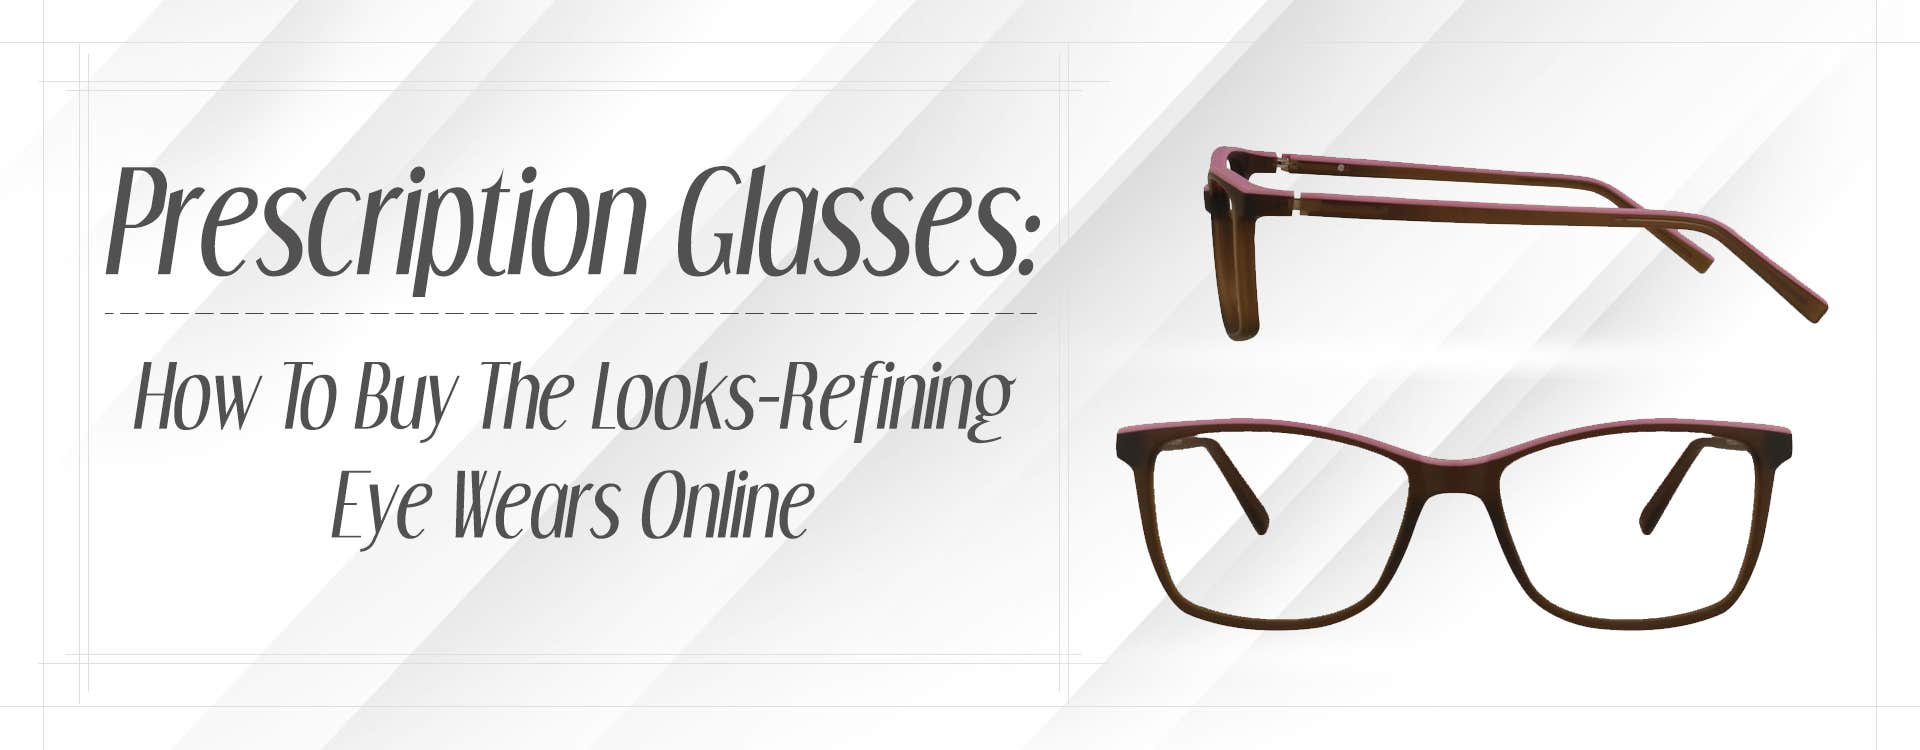 Prescription Glasses: How To Buy The Looks-Refining Eyewear Online